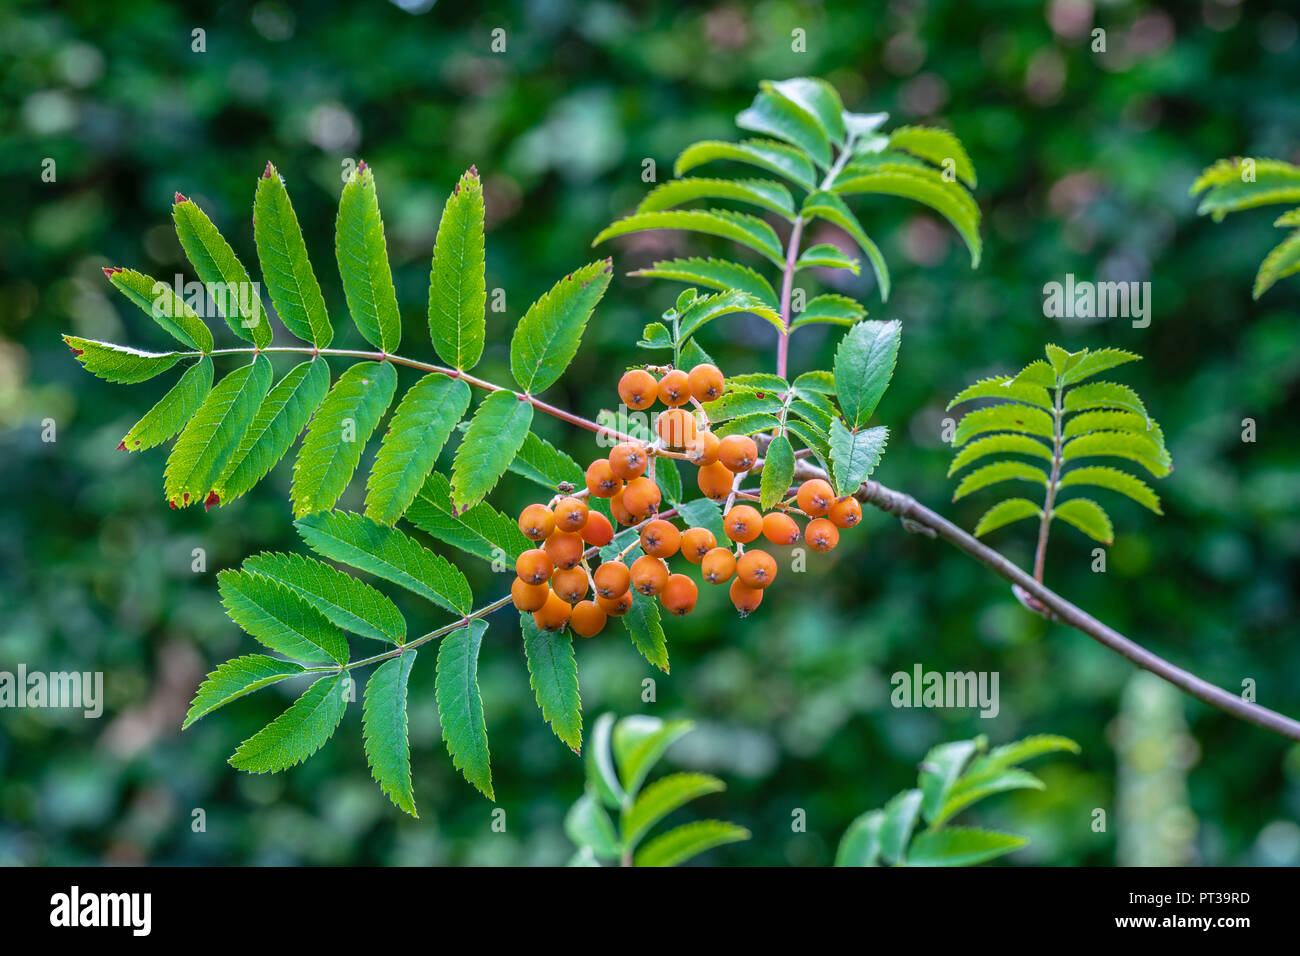 Rowan Berry Illustration High Resolution Stock Photography And Images Alamy